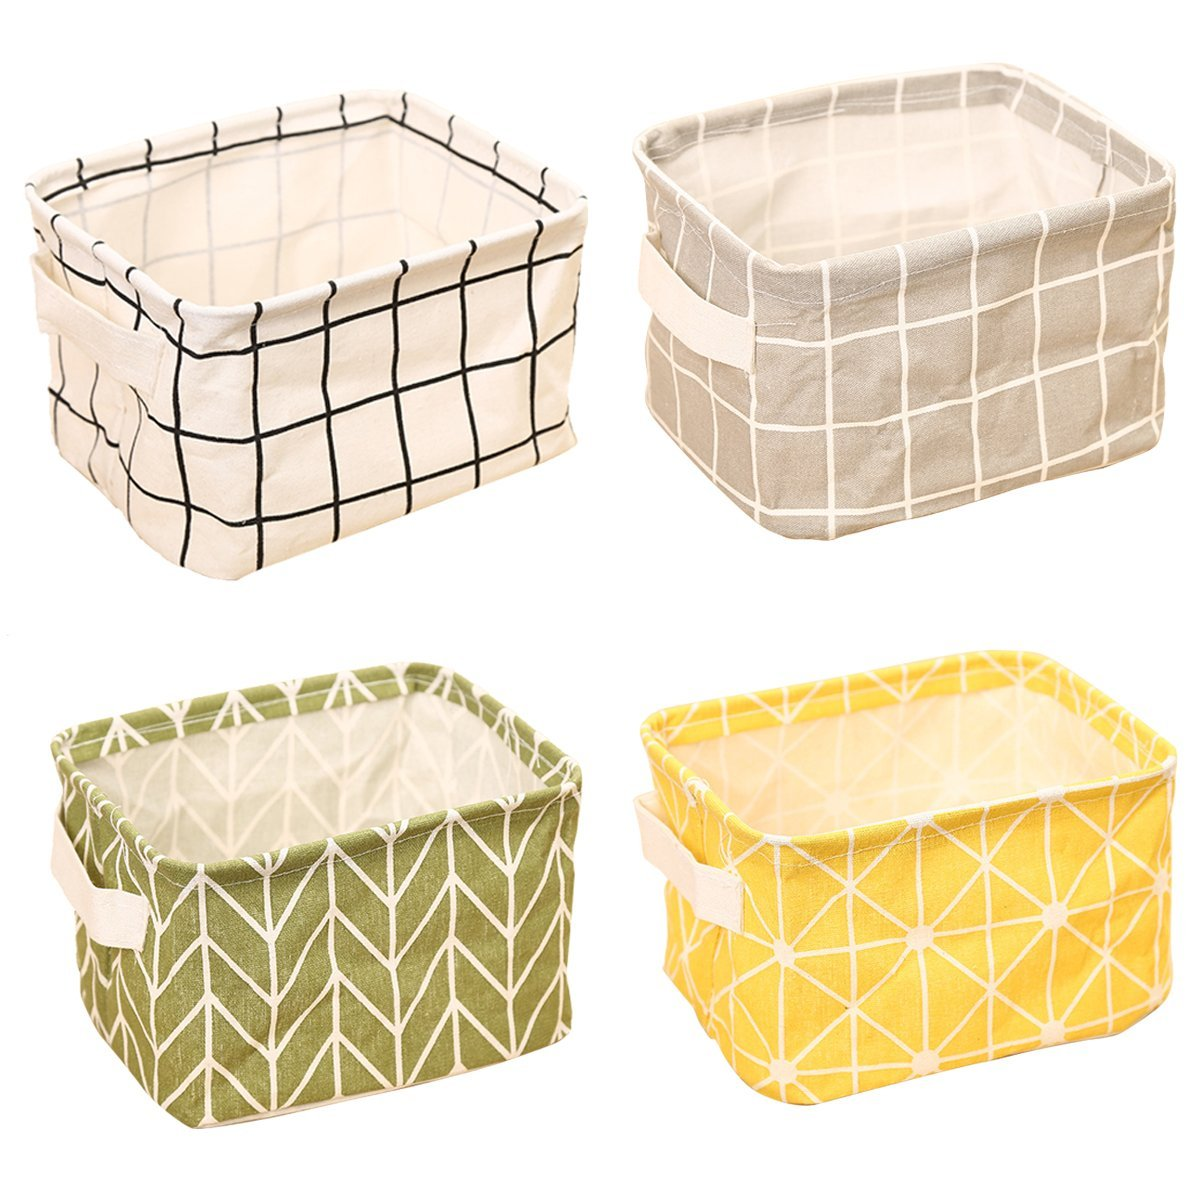 ZhengYue Storage Box Fabric Storage Cubes Linen and Cotton Organizer Water-Proof Fabric Storage Basket Organizer with 2 Hands on Both Side 4 Packs